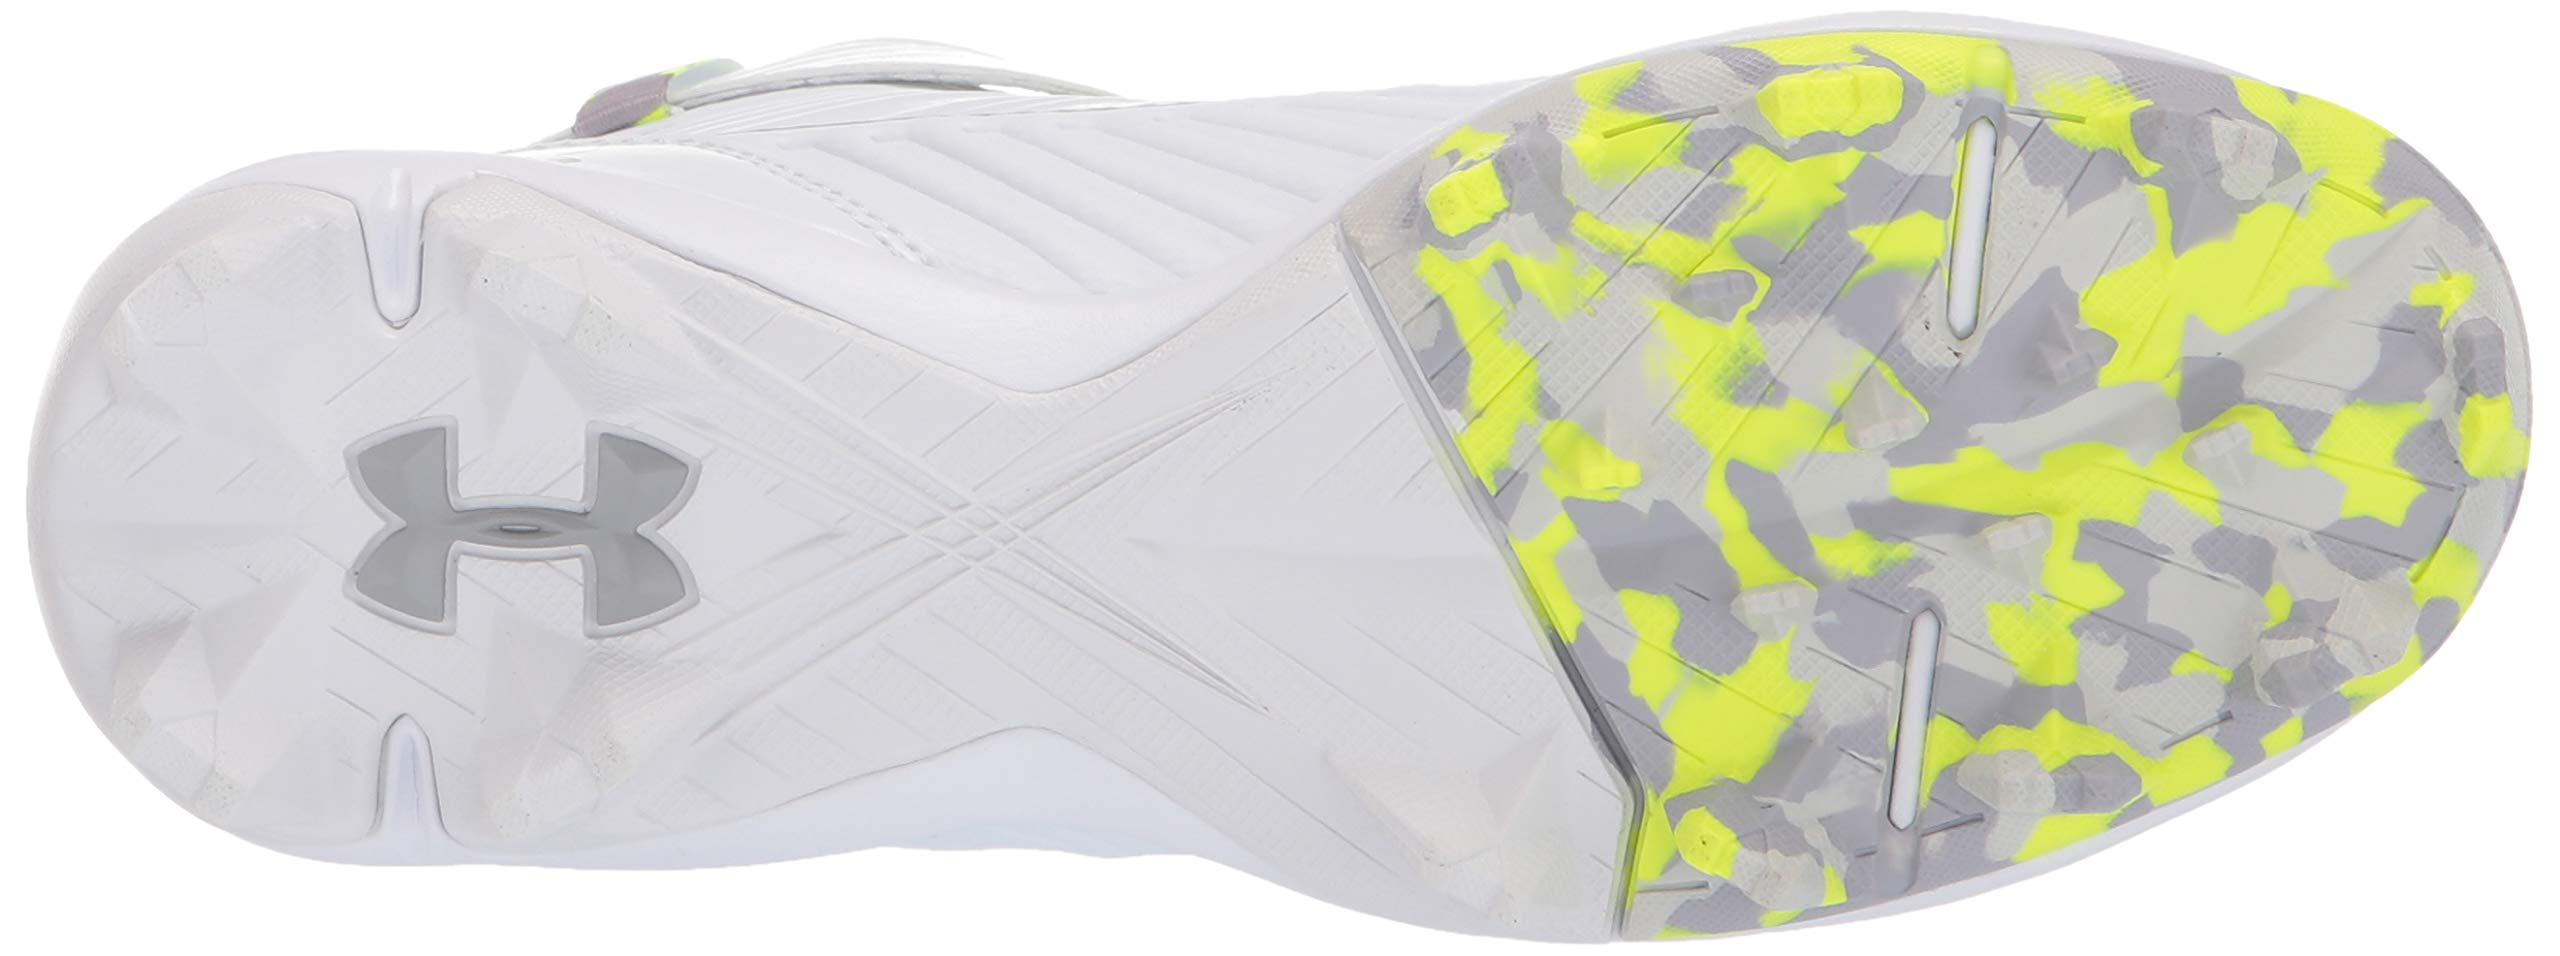 Under Armour Boys' Harper 3 Mid Jr. RM Baseball Shoe 100/White, 1 by Under Armour (Image #3)